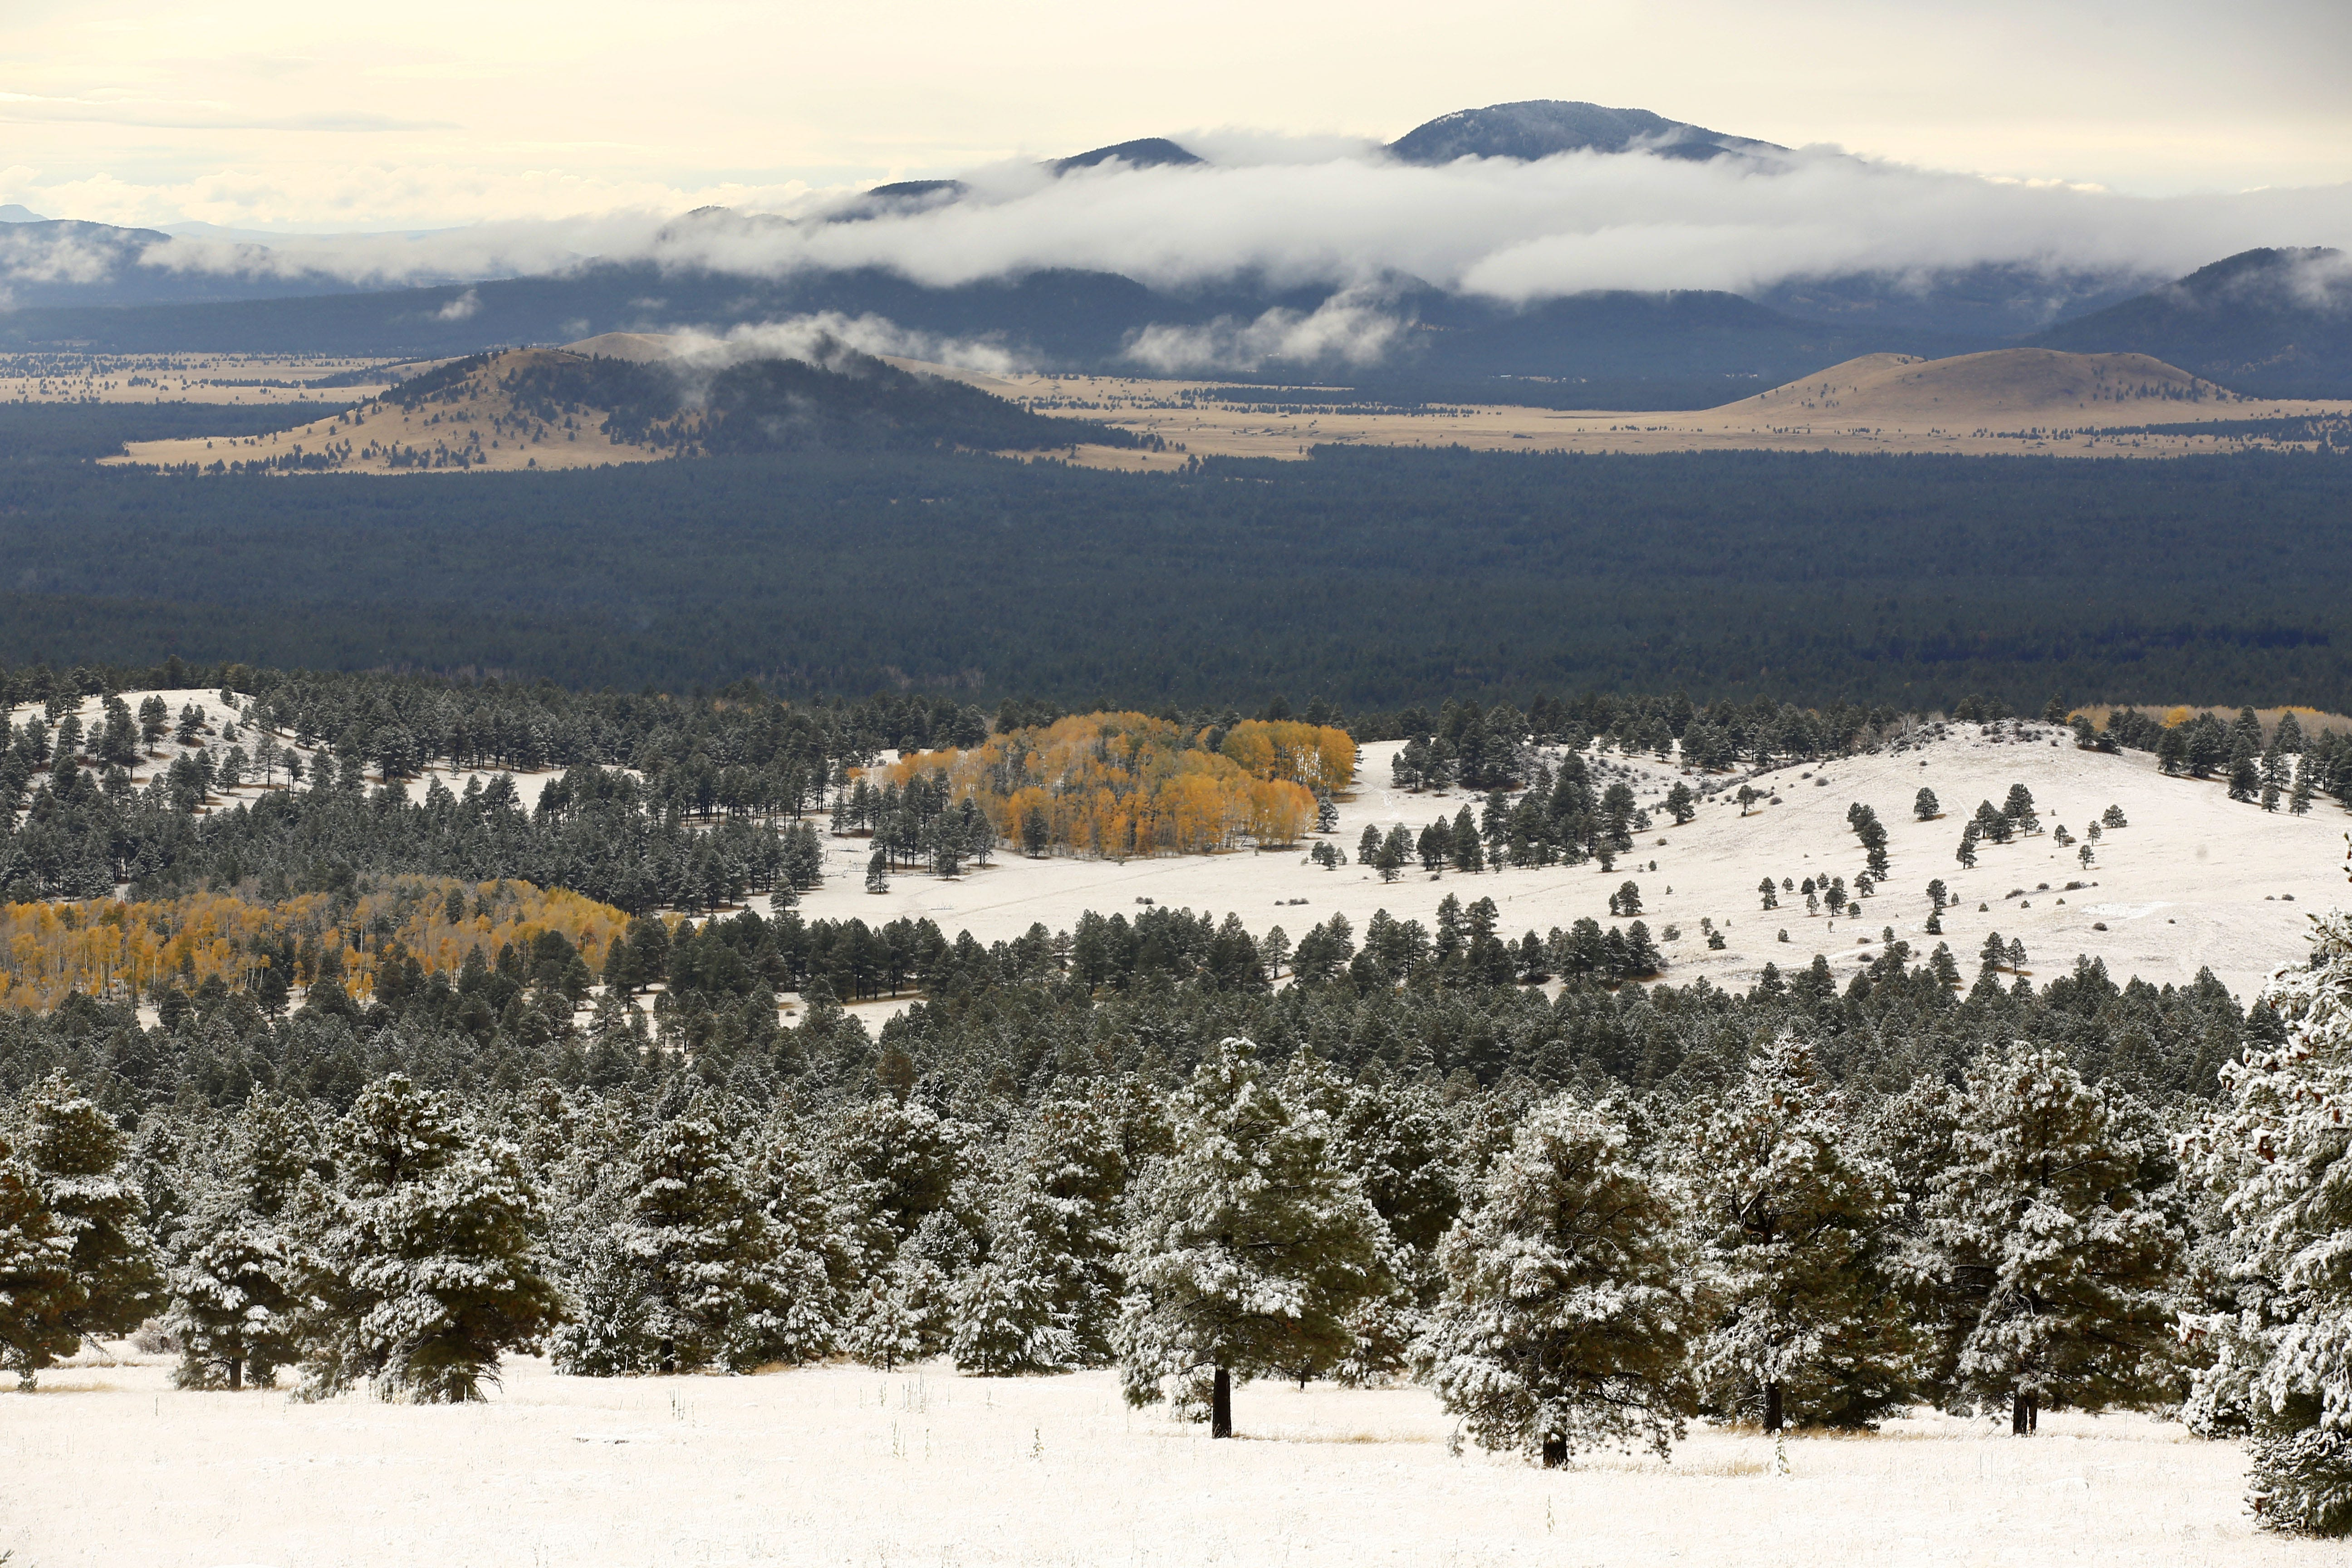 Tribes raise alarms about proposed 'memorial forest' near San Francisco Peaks